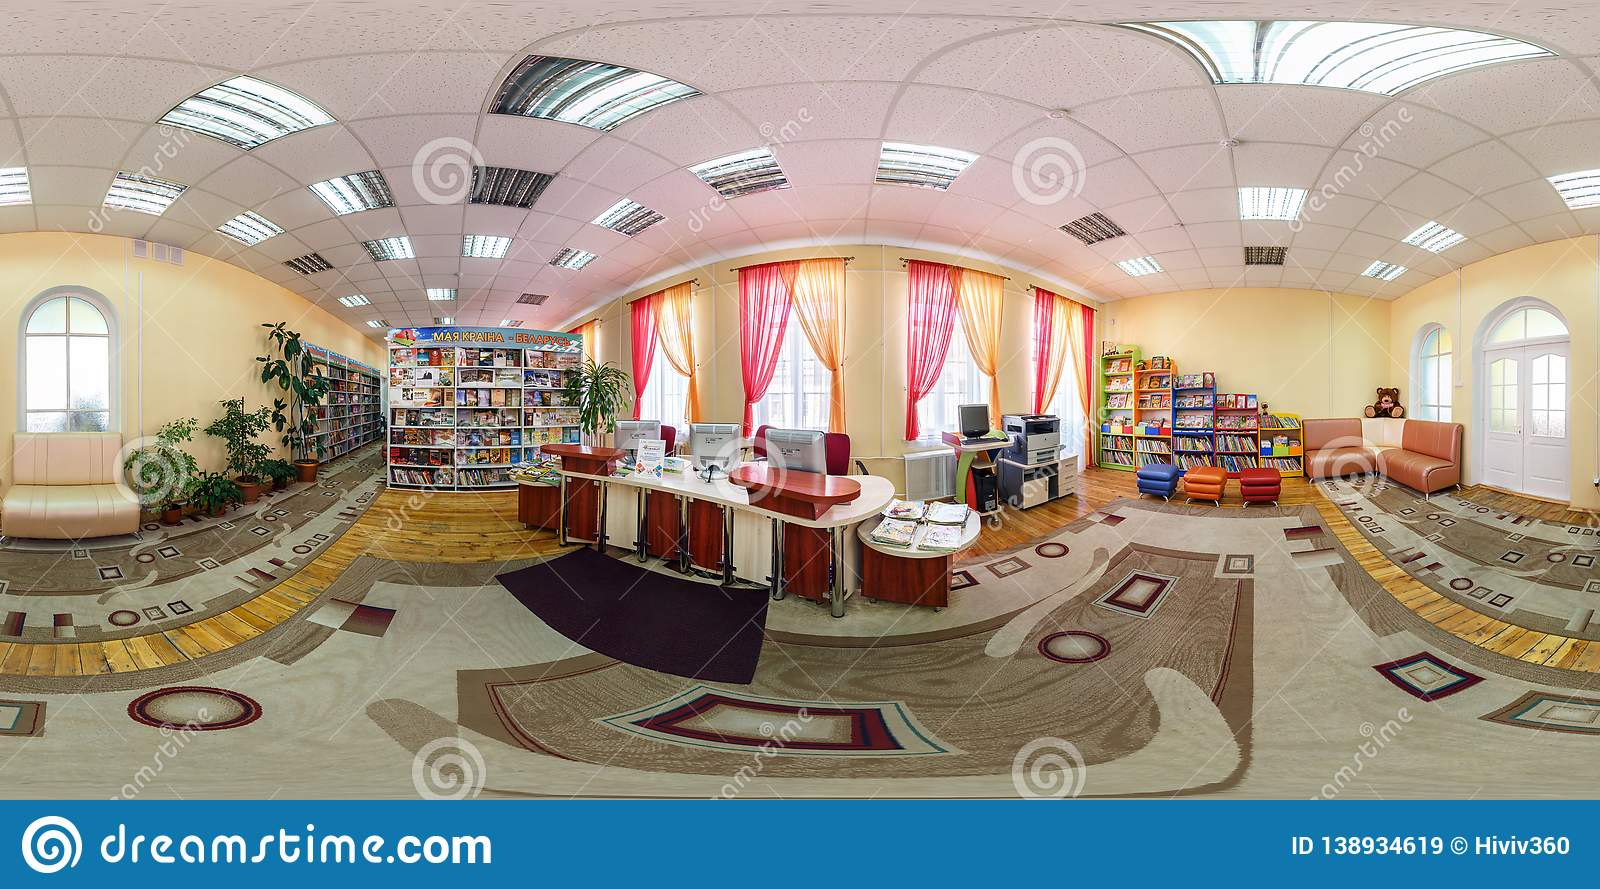 GRODNO, BELARUS - MAY 2, 2016: Panorama interior library in the center of children development. Full spherical 360 by 180 degrees